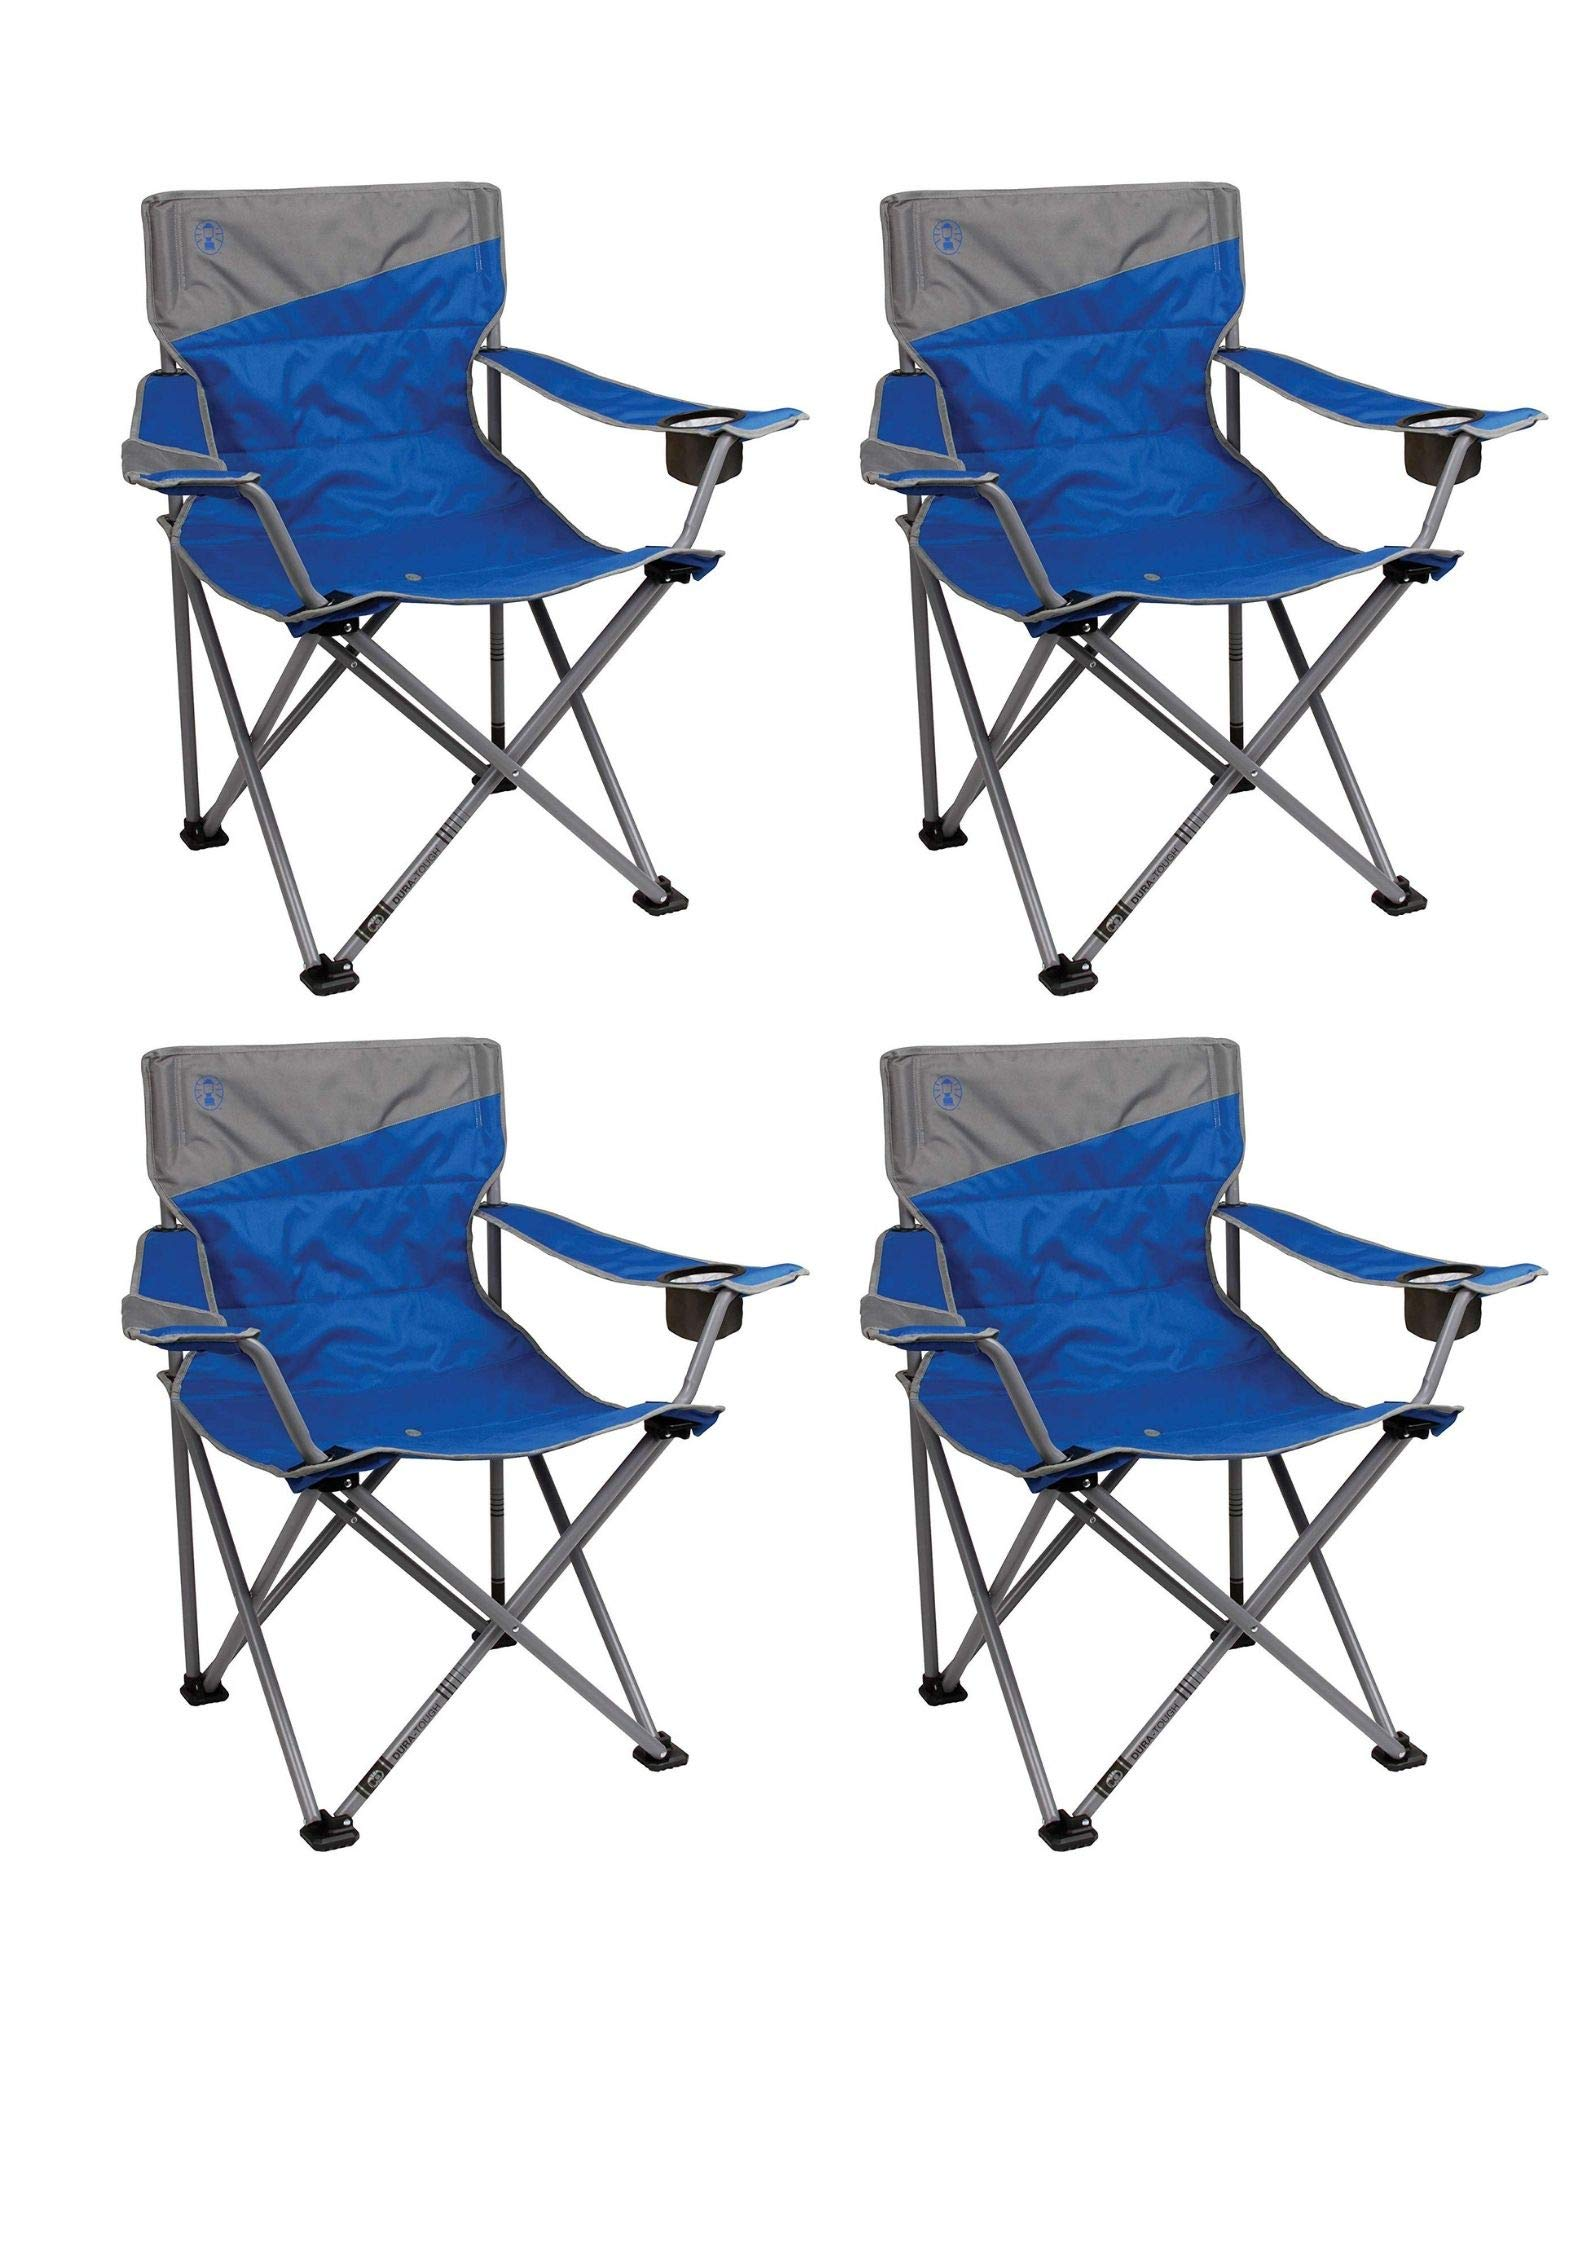 Coleman Big and Tall Portable Folding Camp Chair (Pack of 4) by Coleman